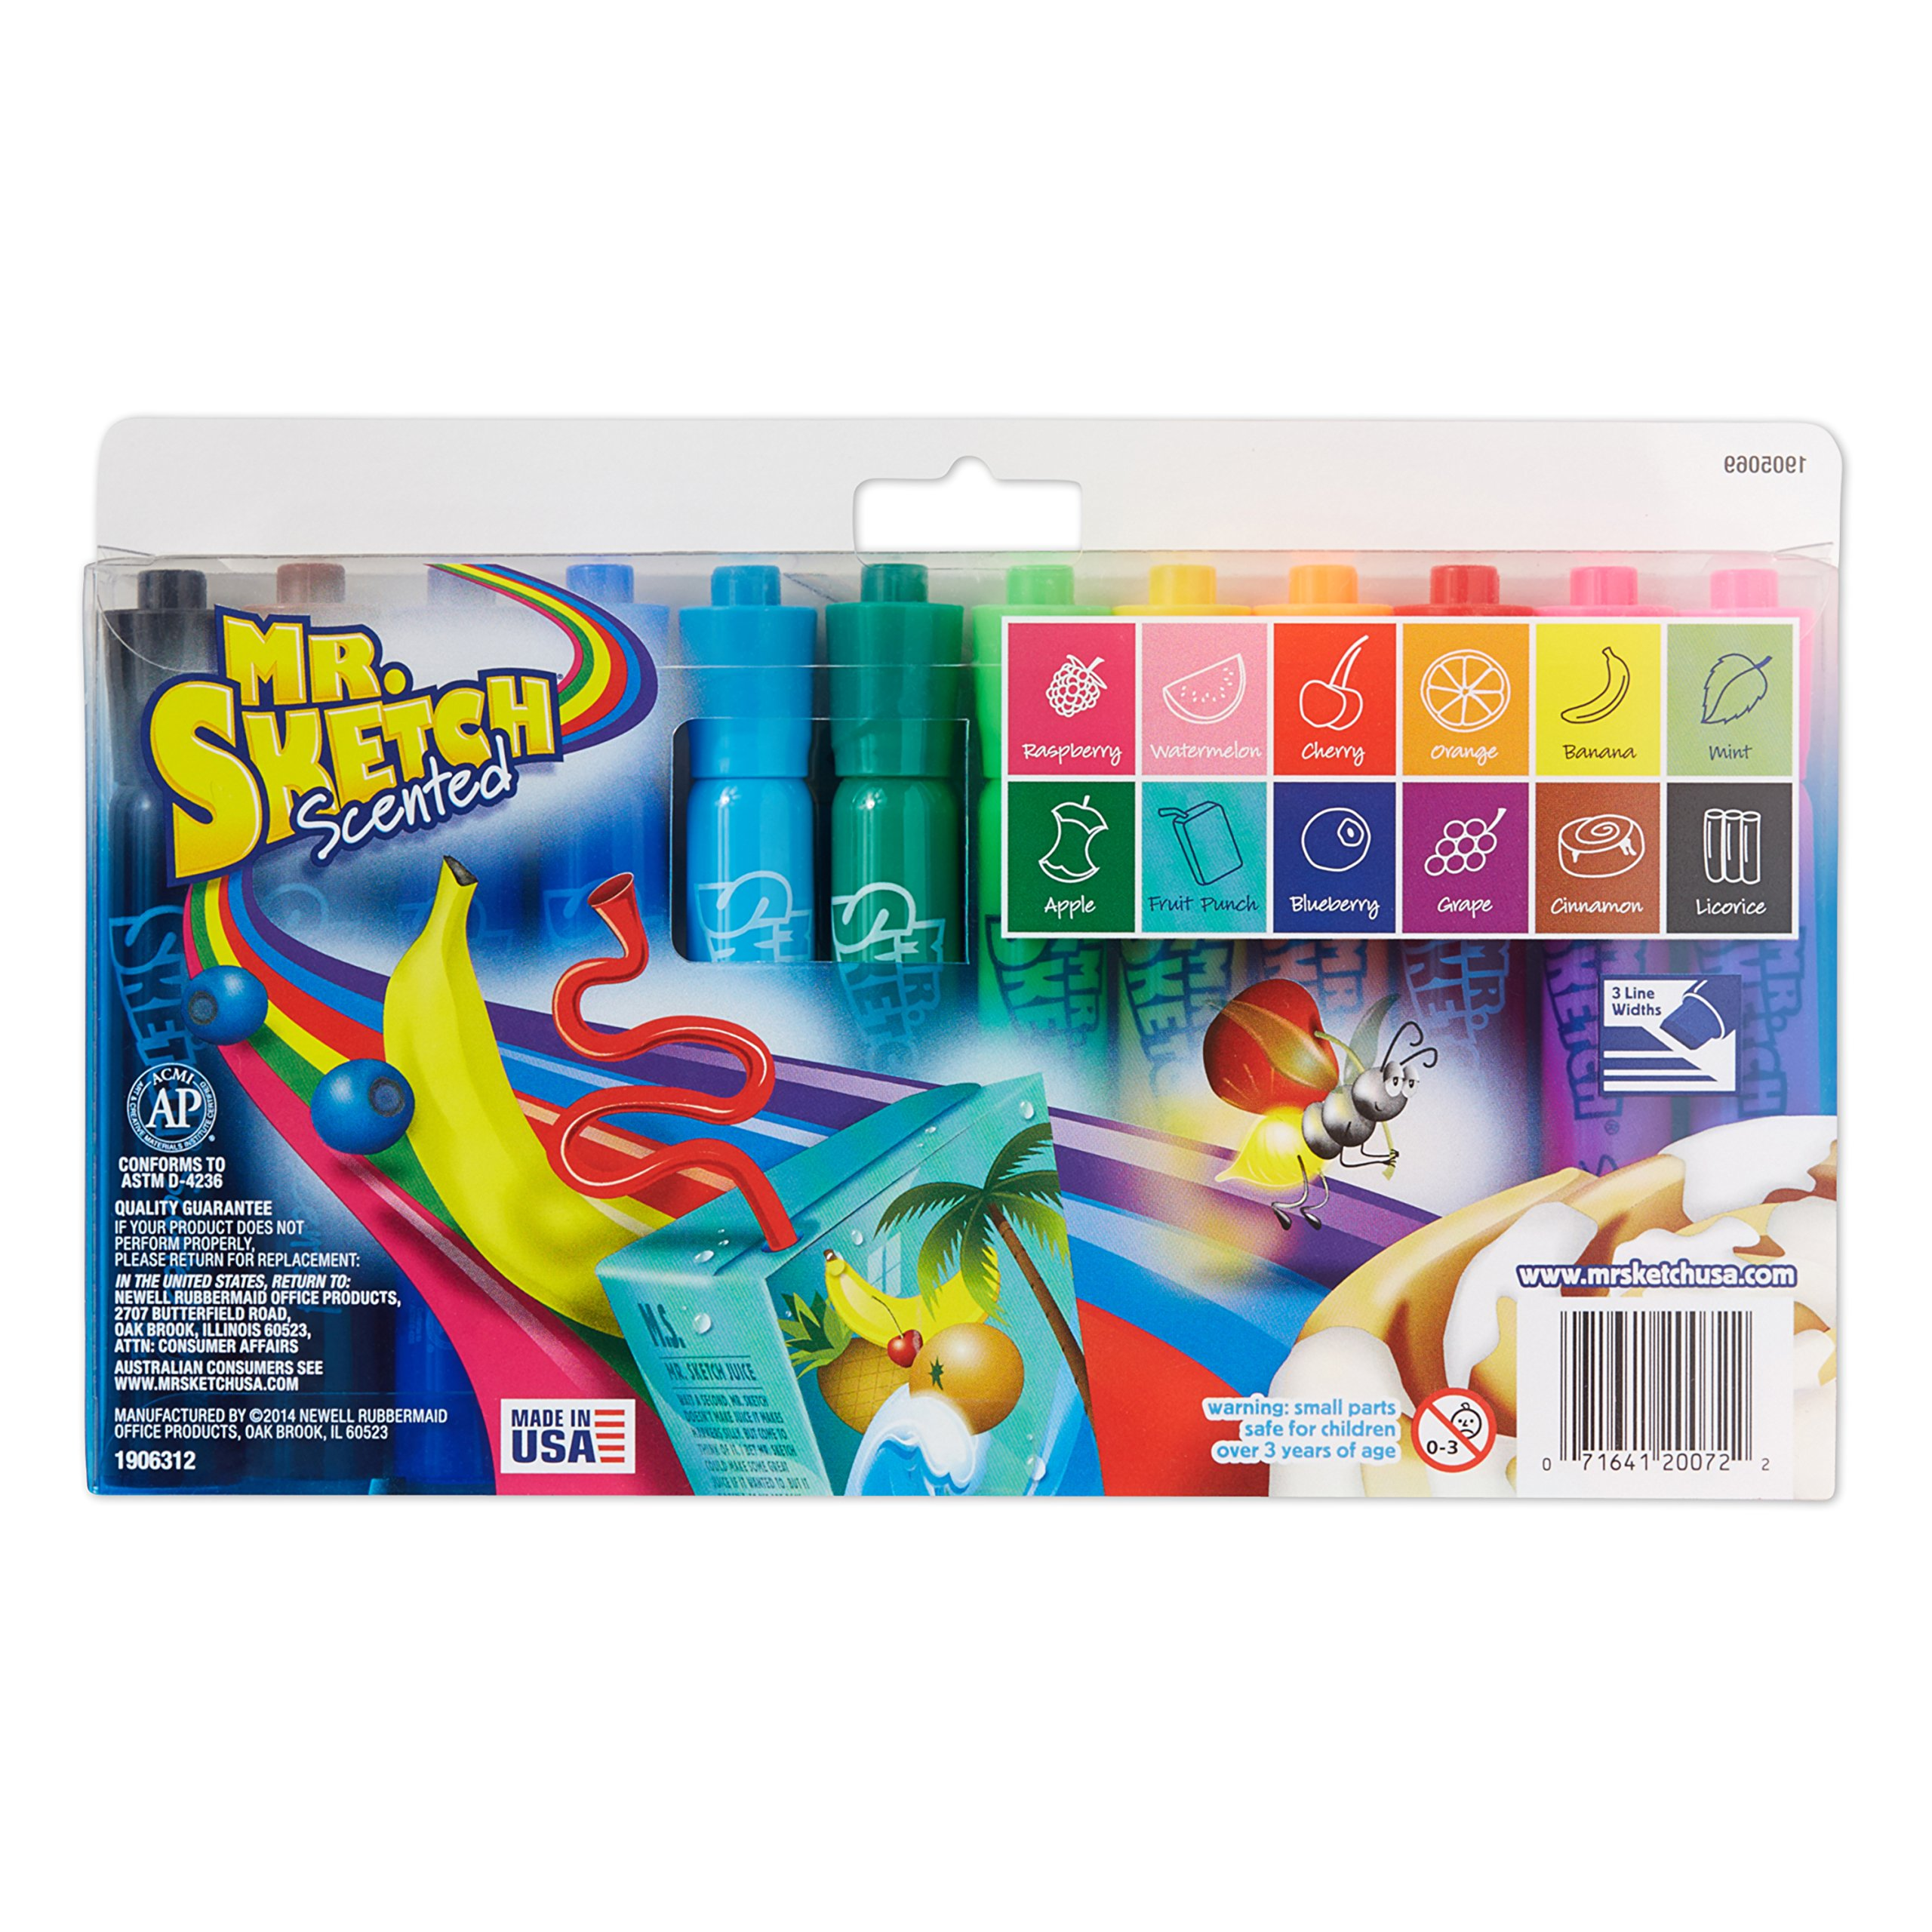 Mr. Sketch Pocket Style Highlighters, Chisel Tip, Assorted Fluorescent,12 Count, Packaging may vary by Mr. Sketch (Image #2)